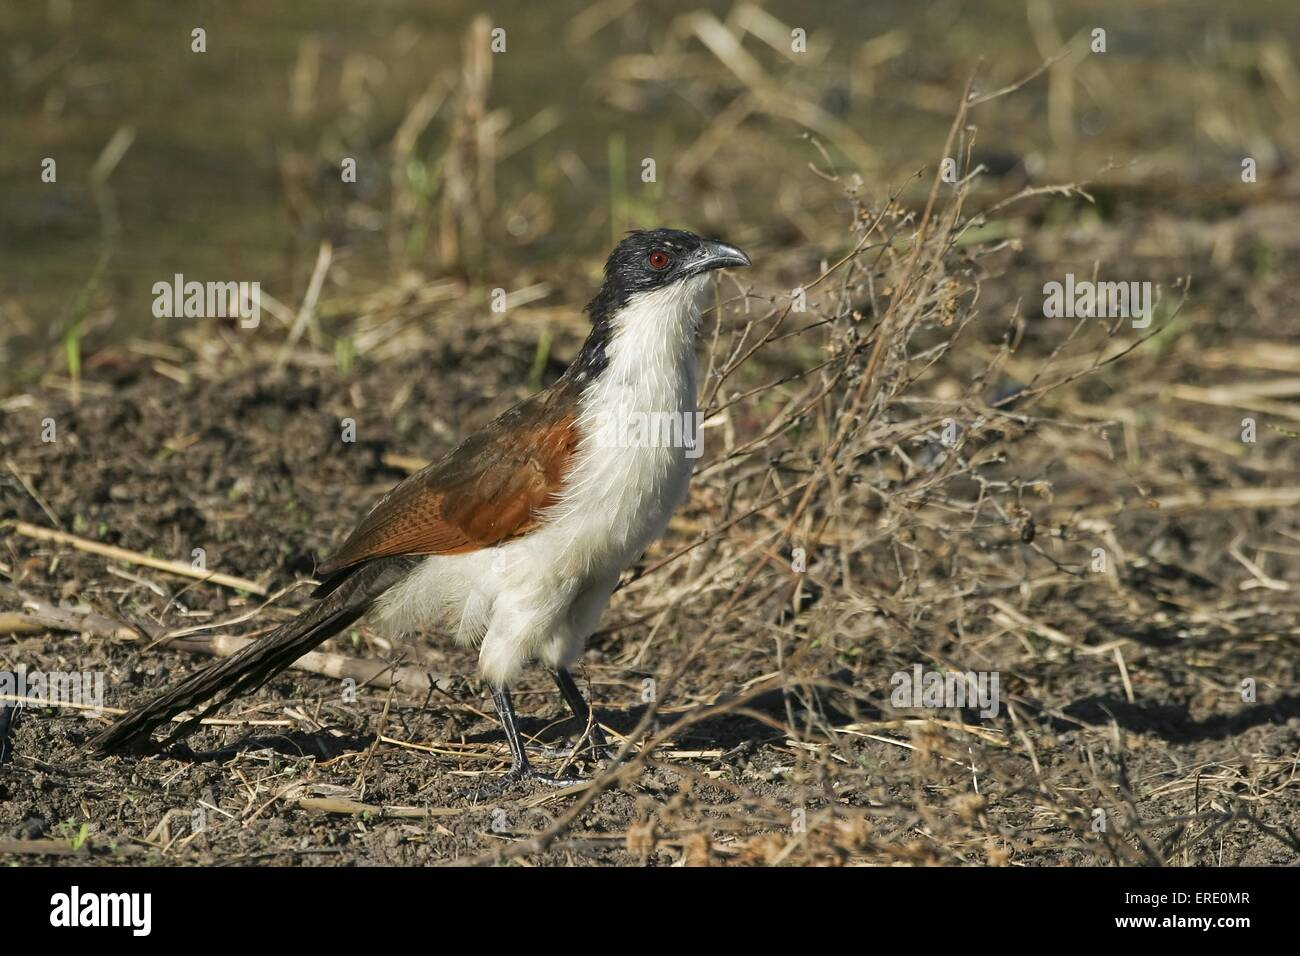 Burchell's Coucal - Stock Image